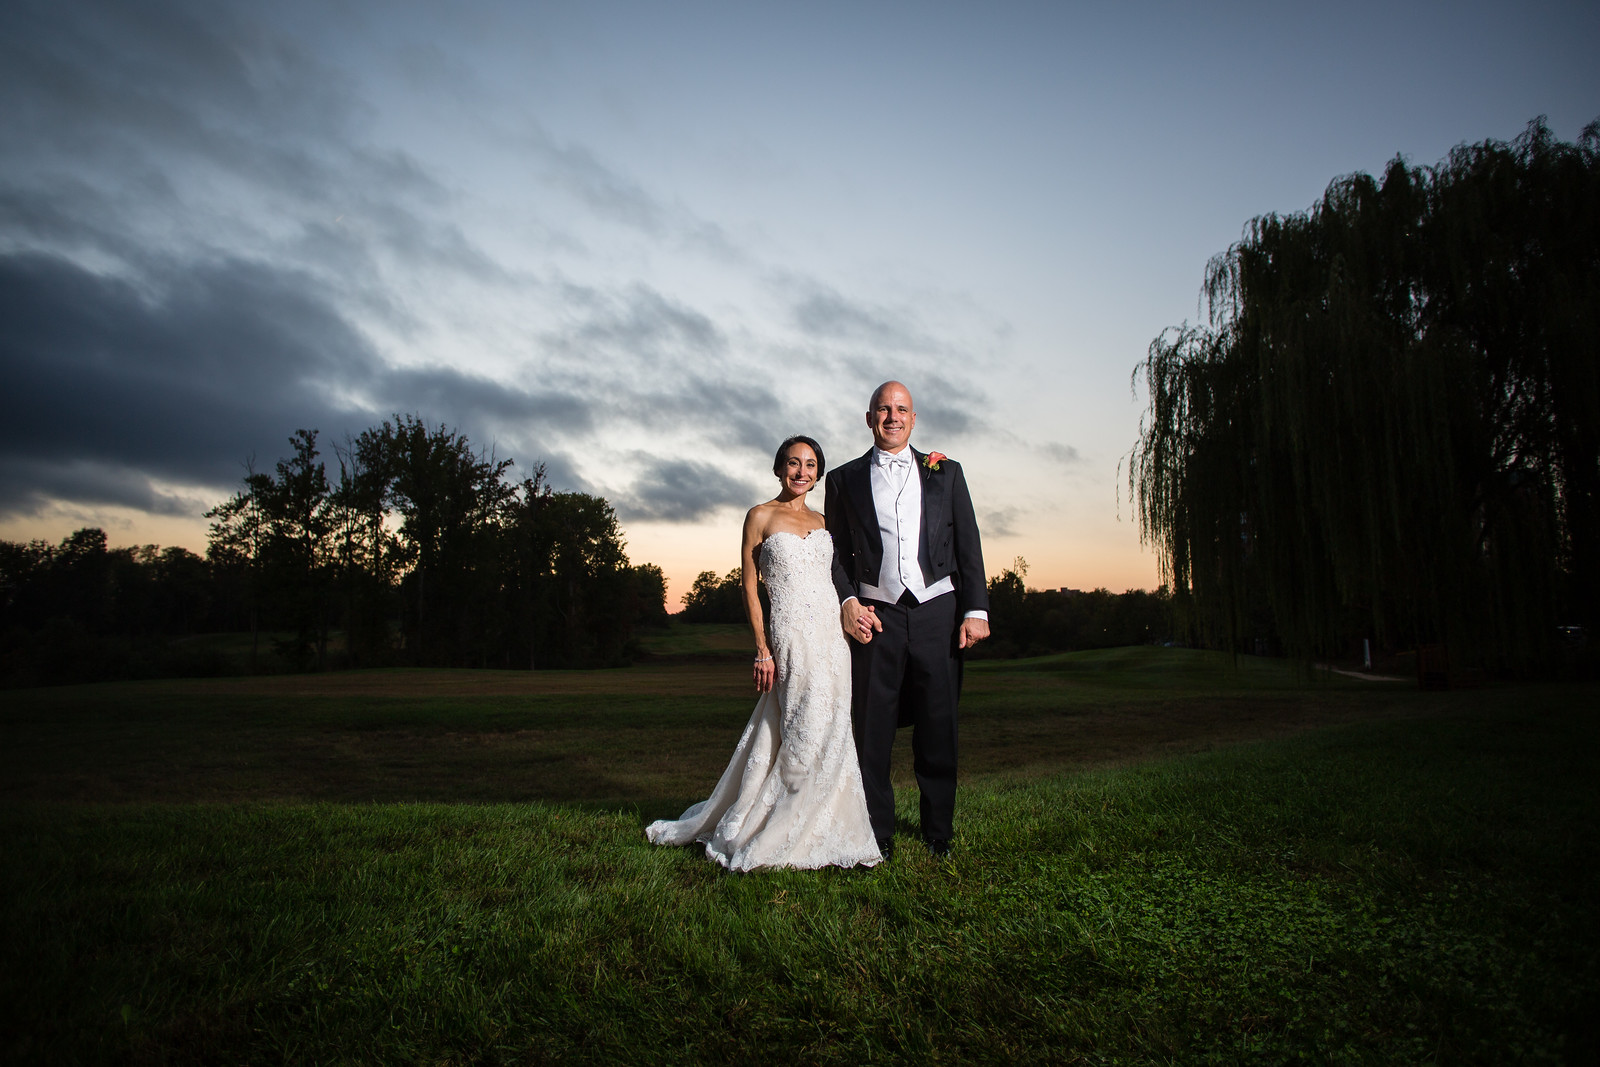 sunset photo of bride and groom weddings by perfect planning events